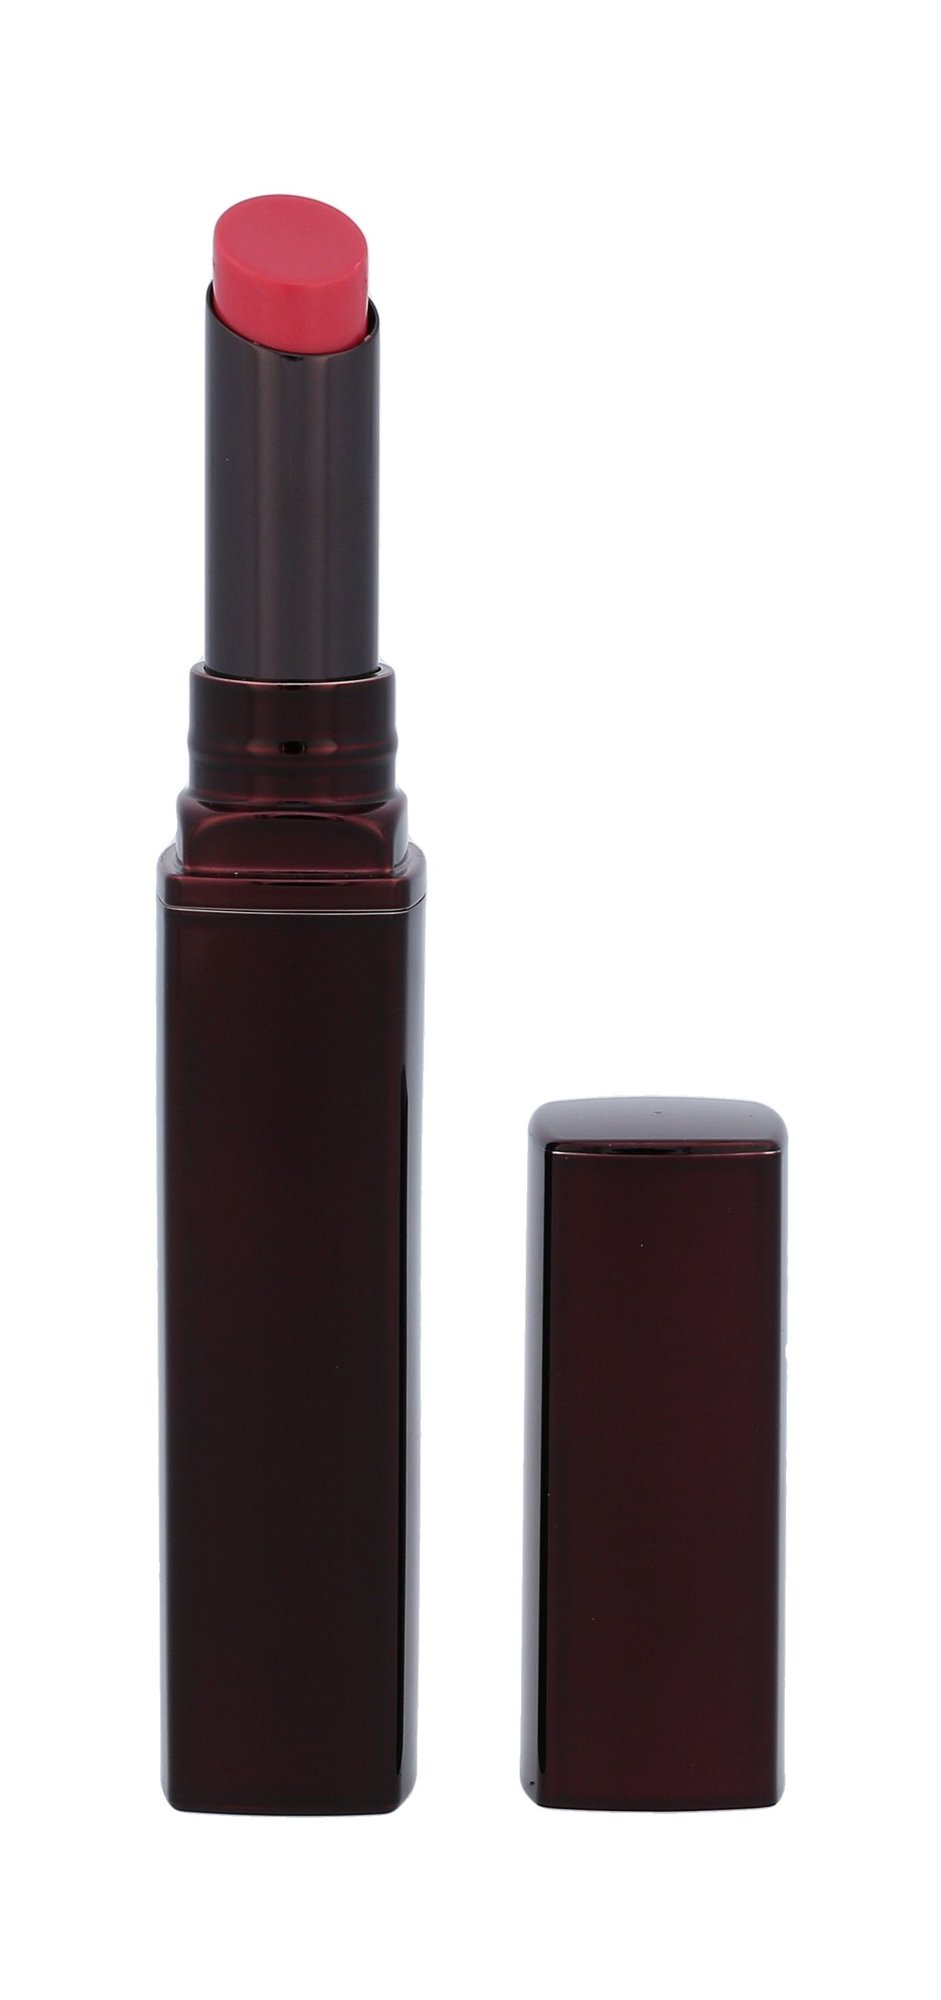 Laura Mercier Rouge Nouveau Cosmetic 1,9gml Shy Weightless